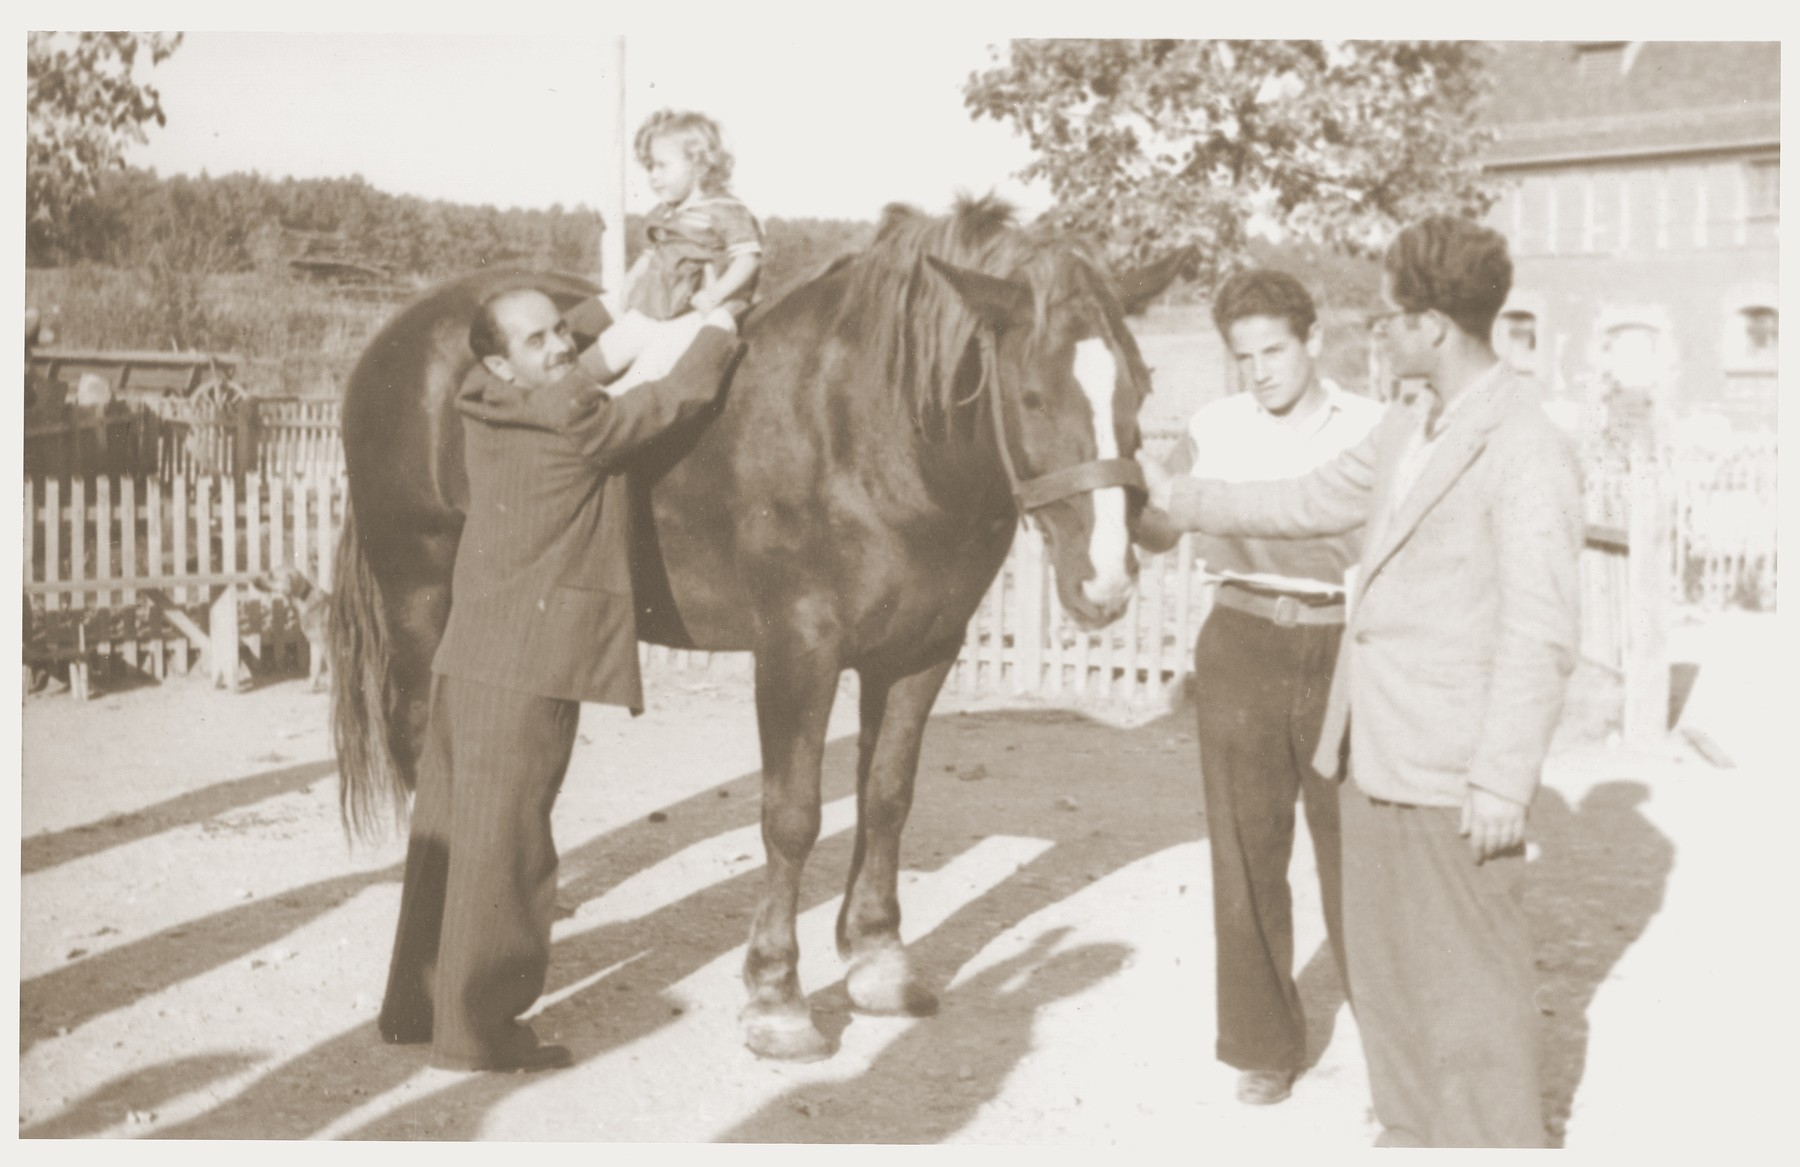 Noach Miedzinski lifts his daughter, Nili, onto one of the horses at the Kibbutz Nili hachshara (Zionist collective) in Pleikershof, Germany.